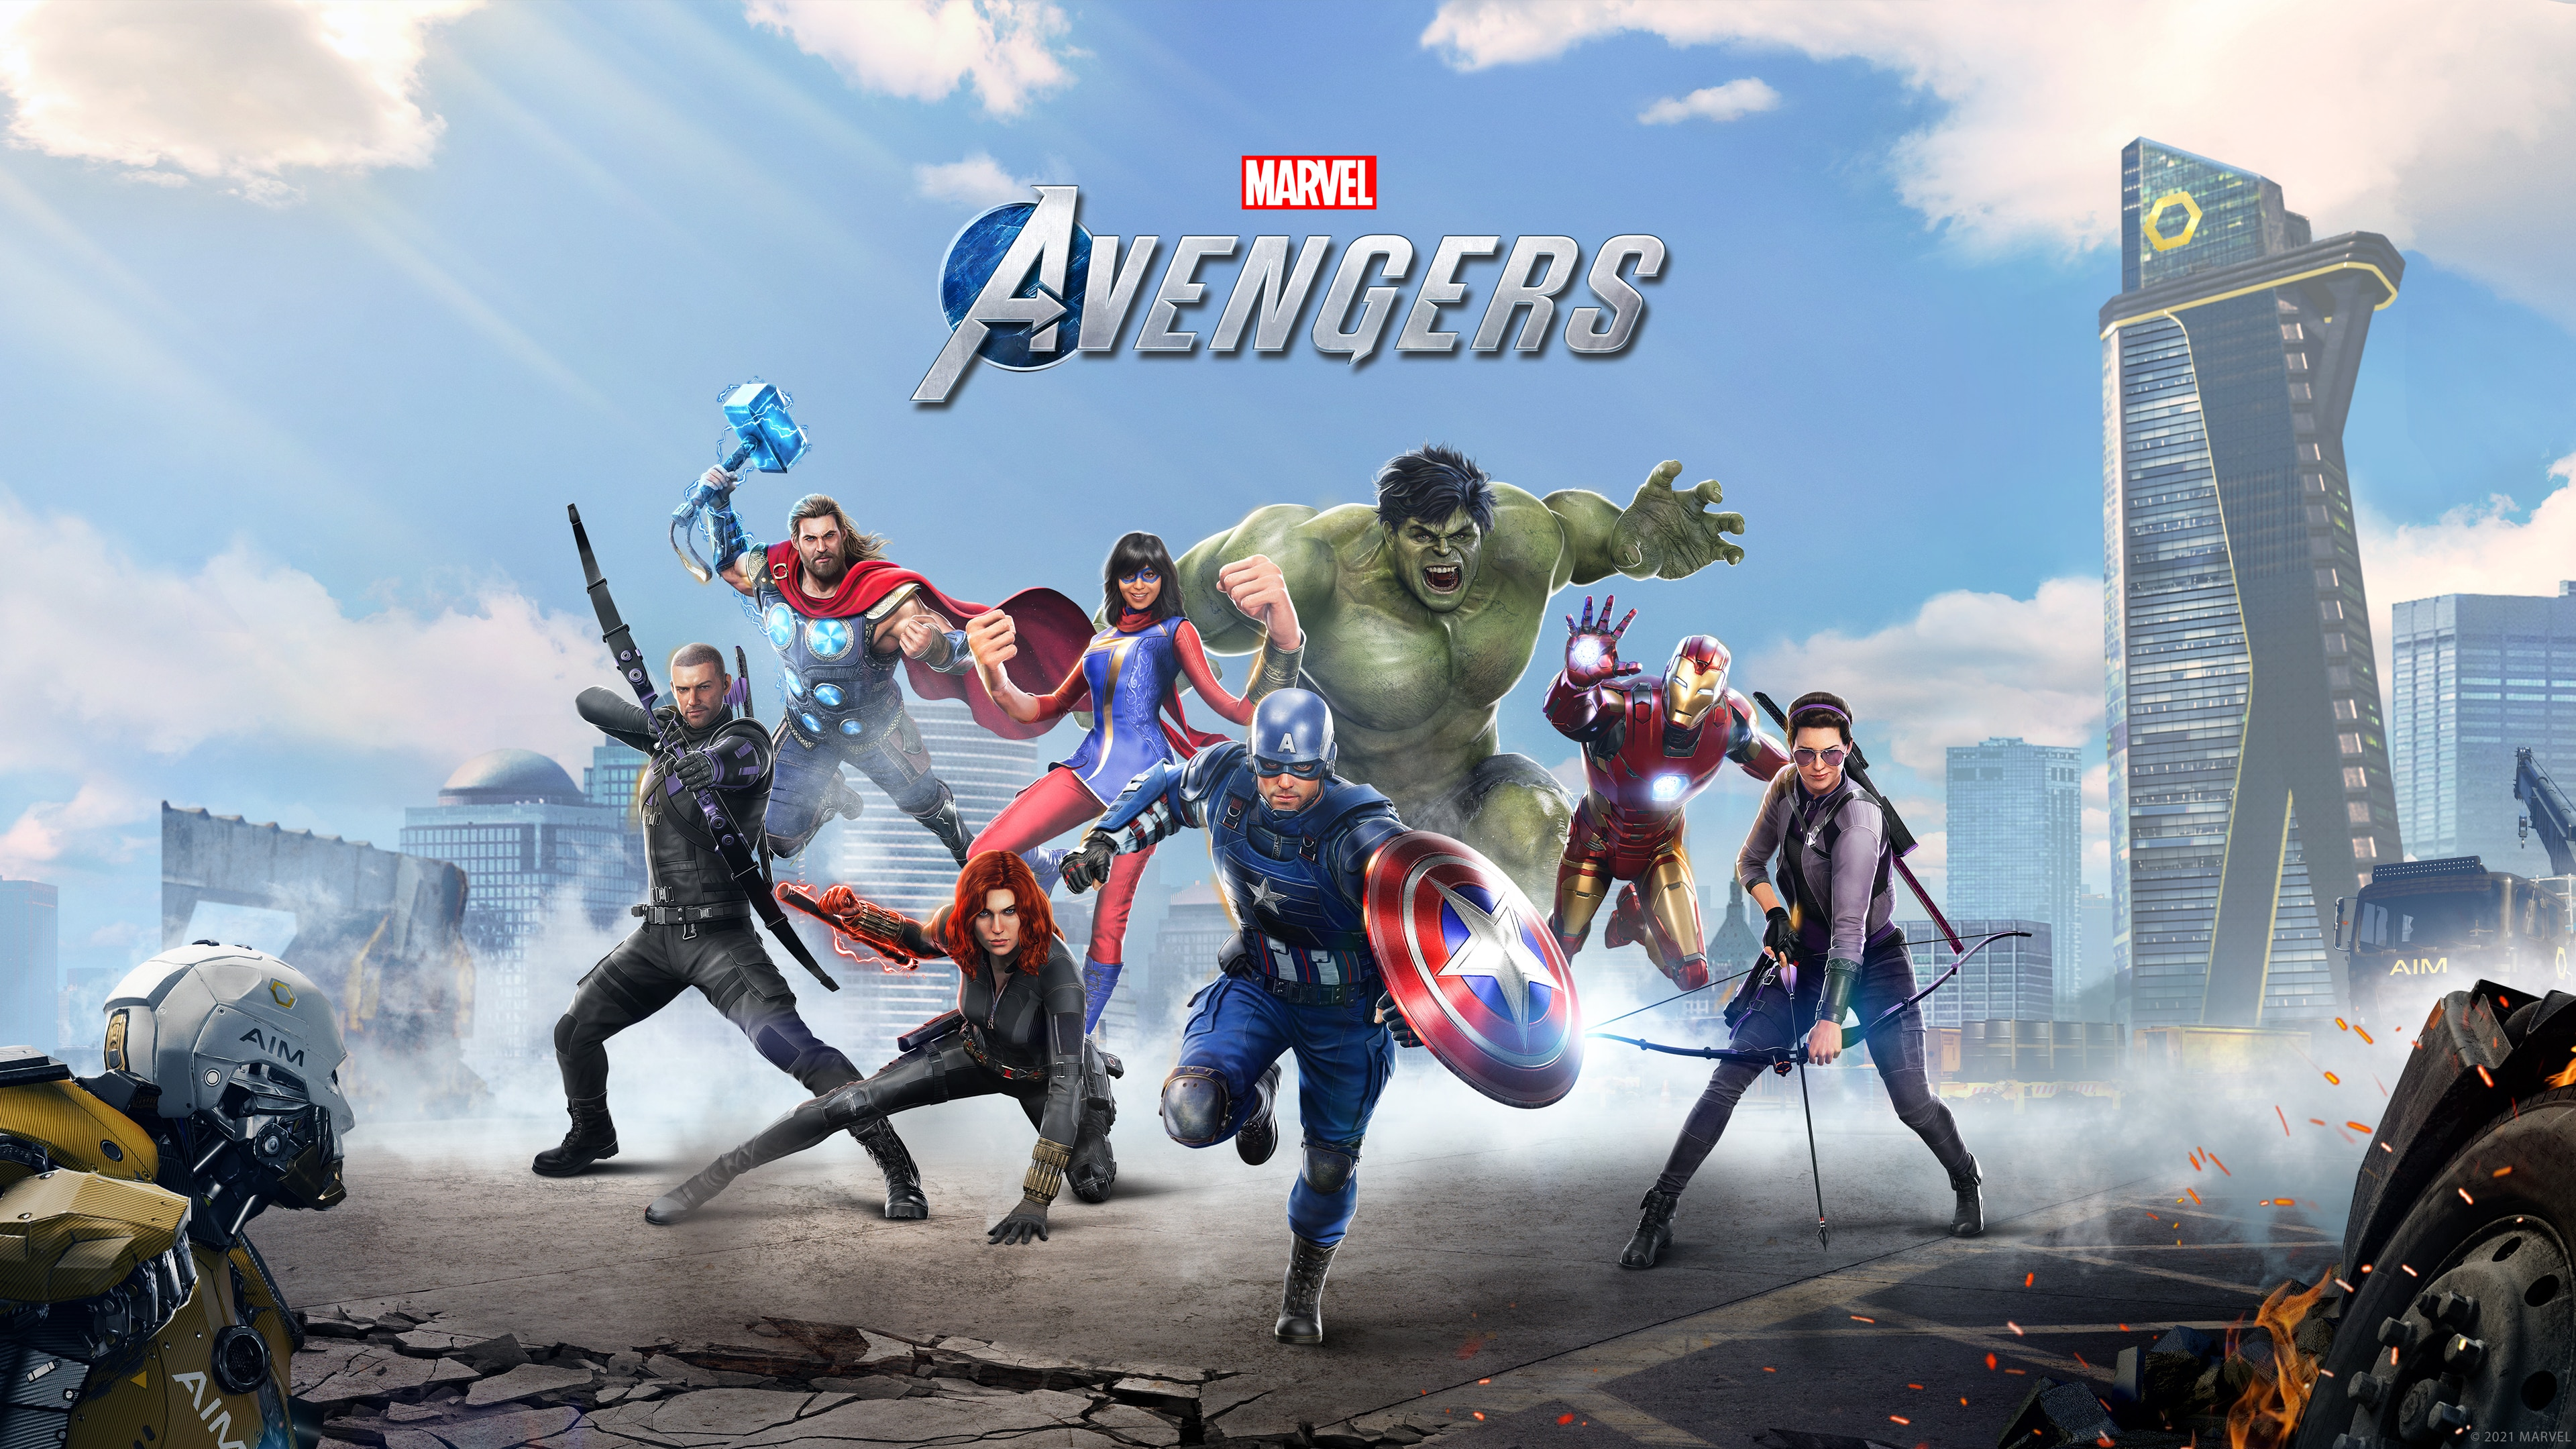 Marvel's Avengers (English)